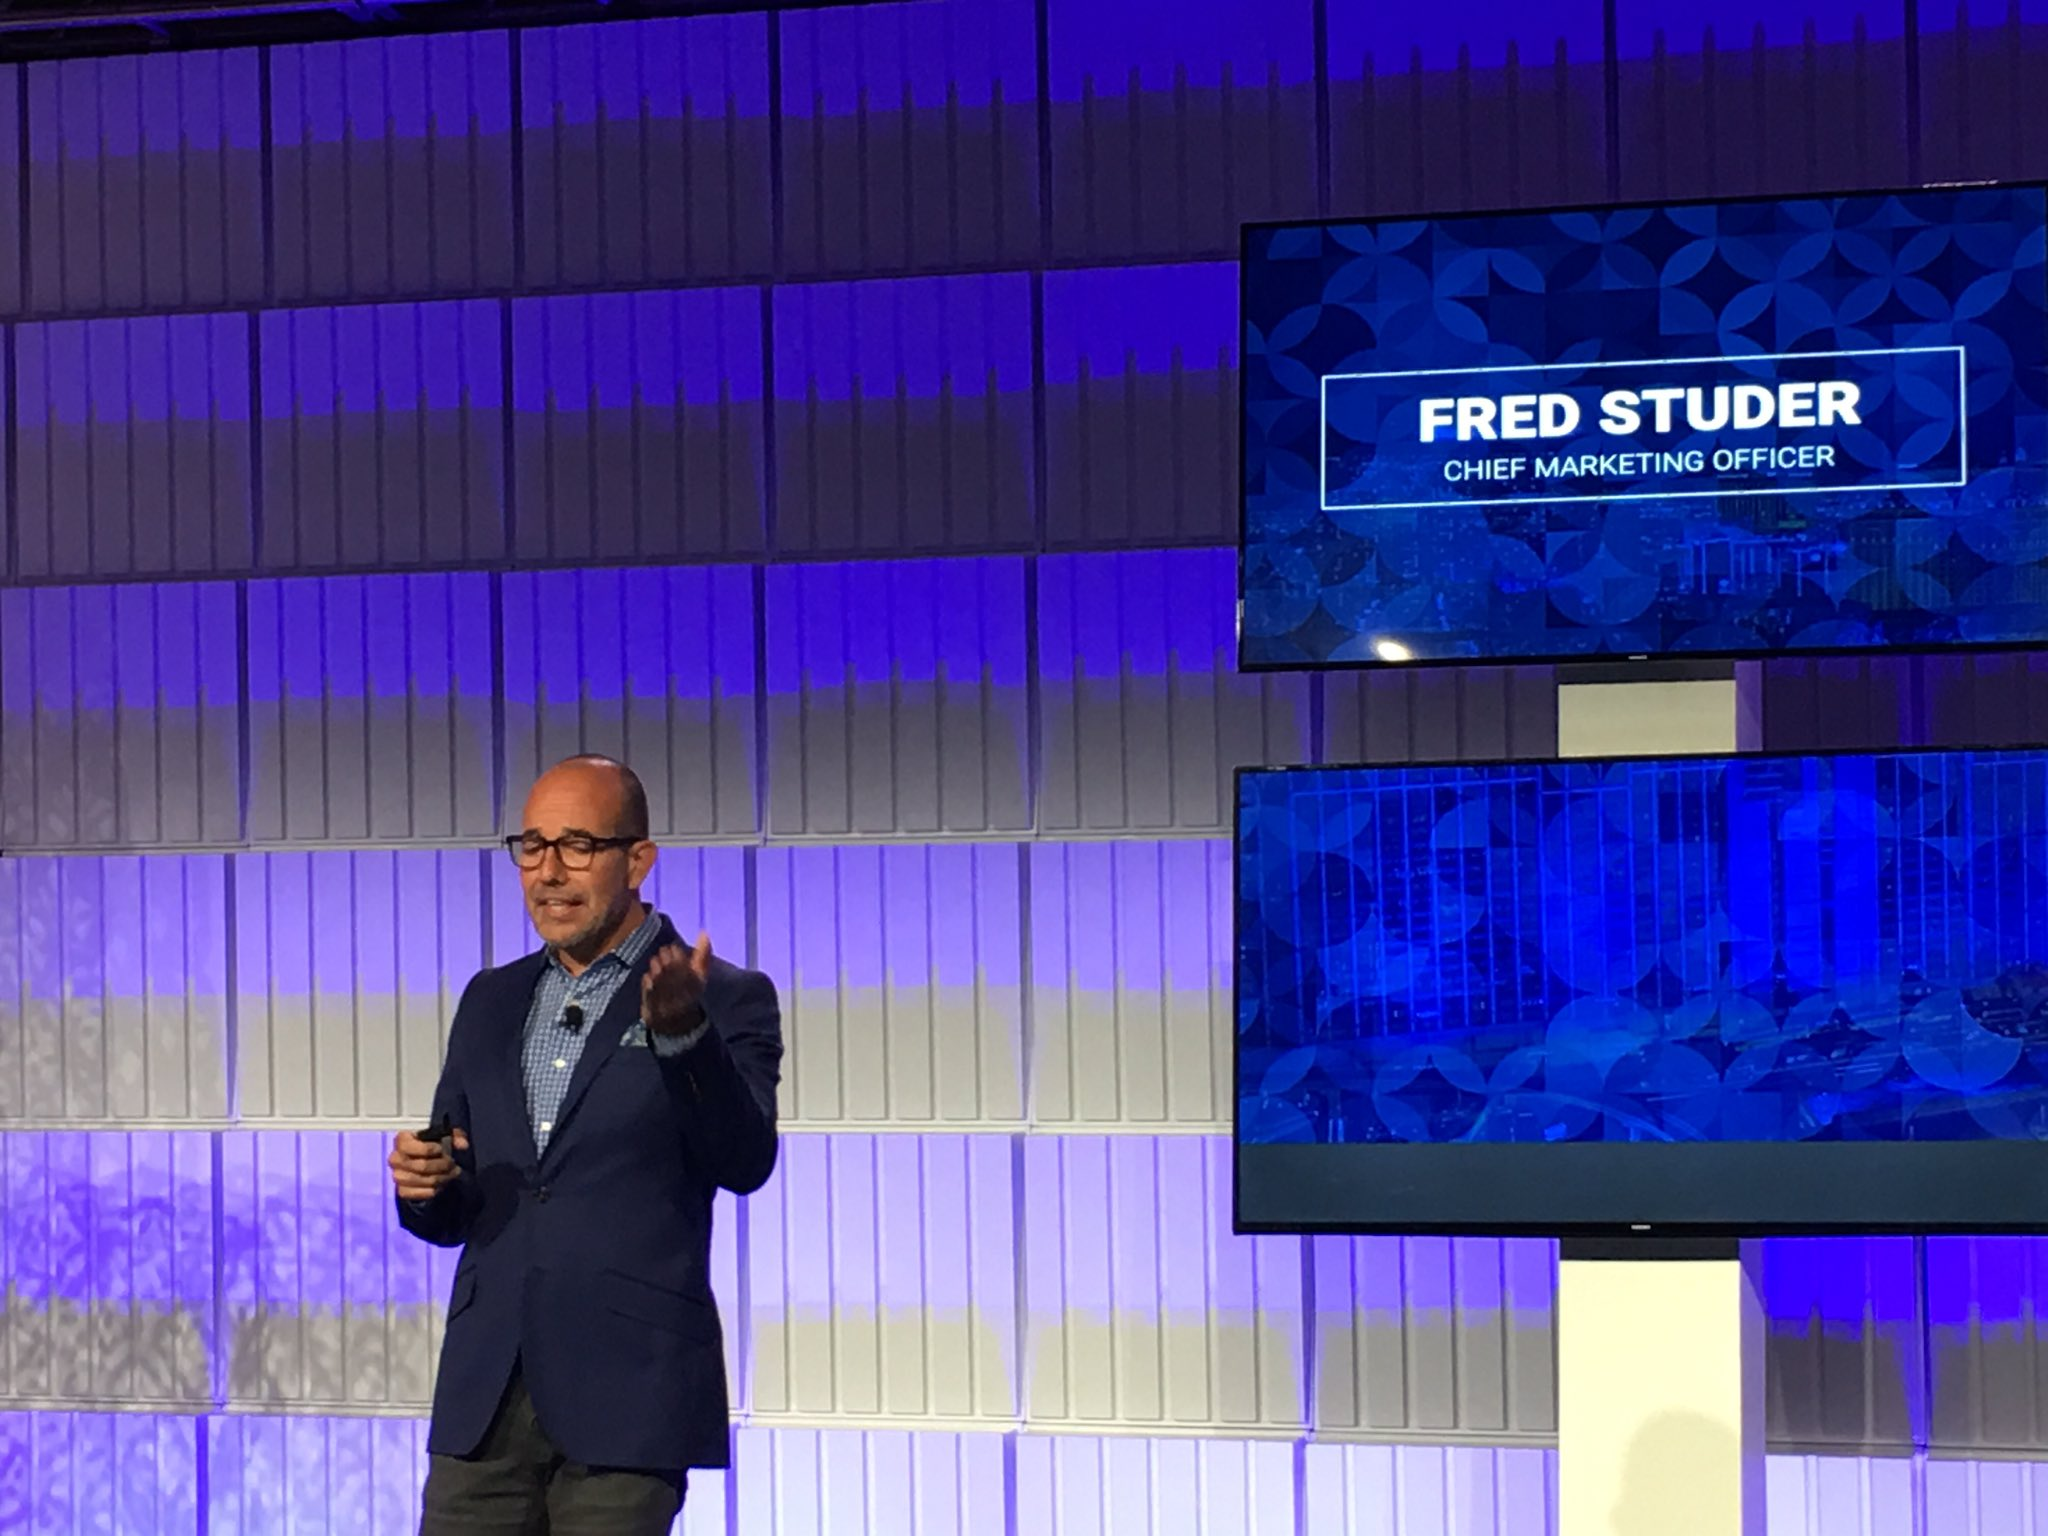 MyPOV: @fredstuder #cmo of @FinancialForce has had massive #ensw experience @NetSuite @oracle @Microsoft #FFComm17 https://t.co/oSdVxNcNmA